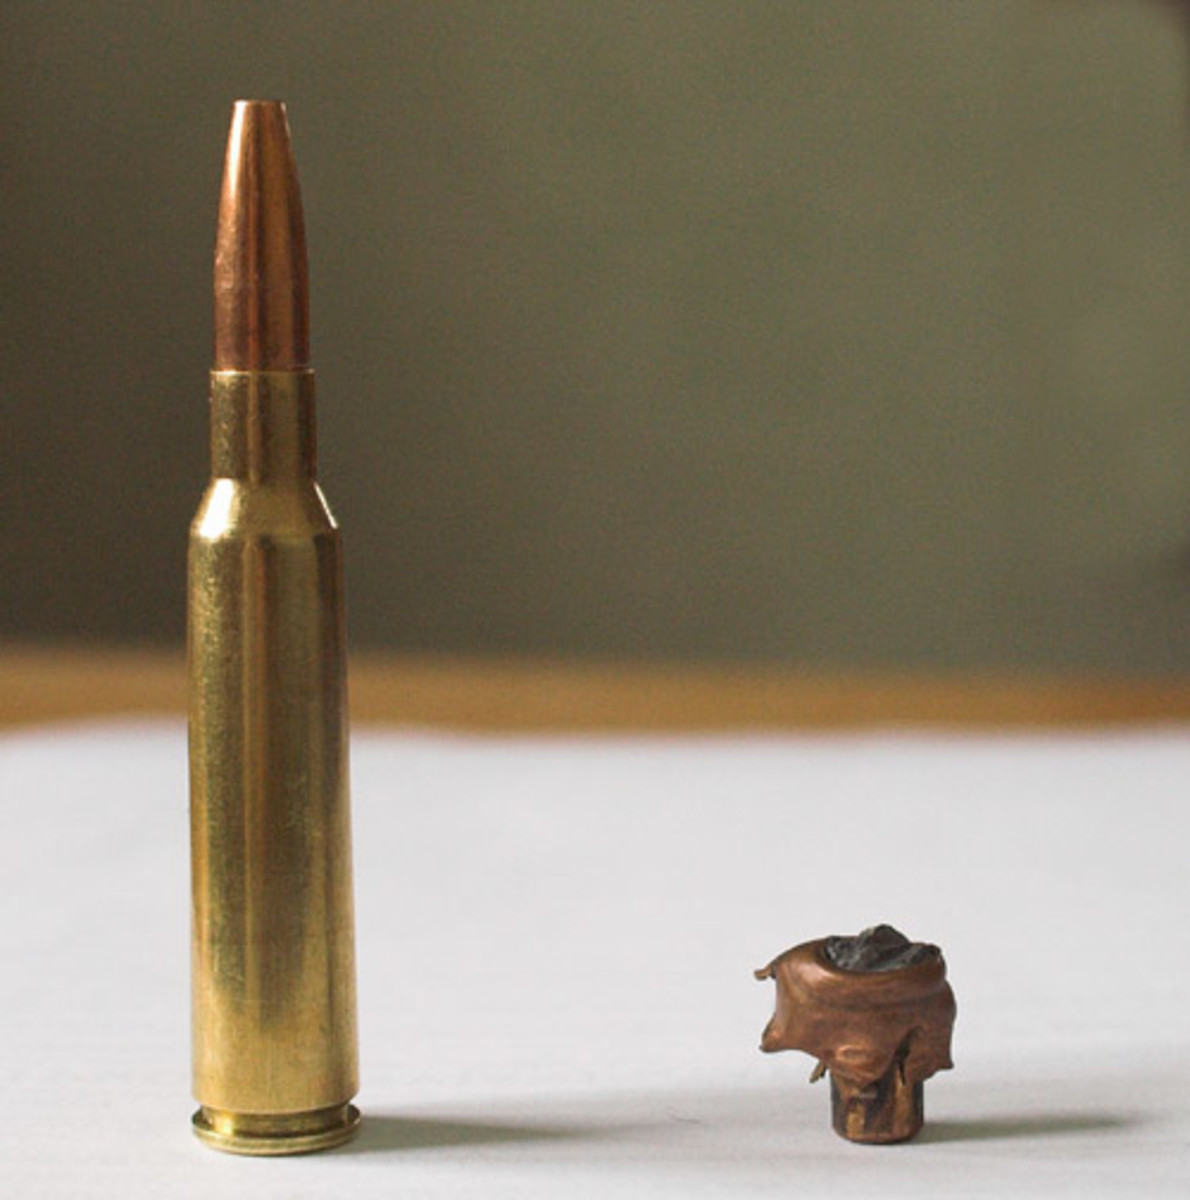 6.5x55mm bullet recovered from moose